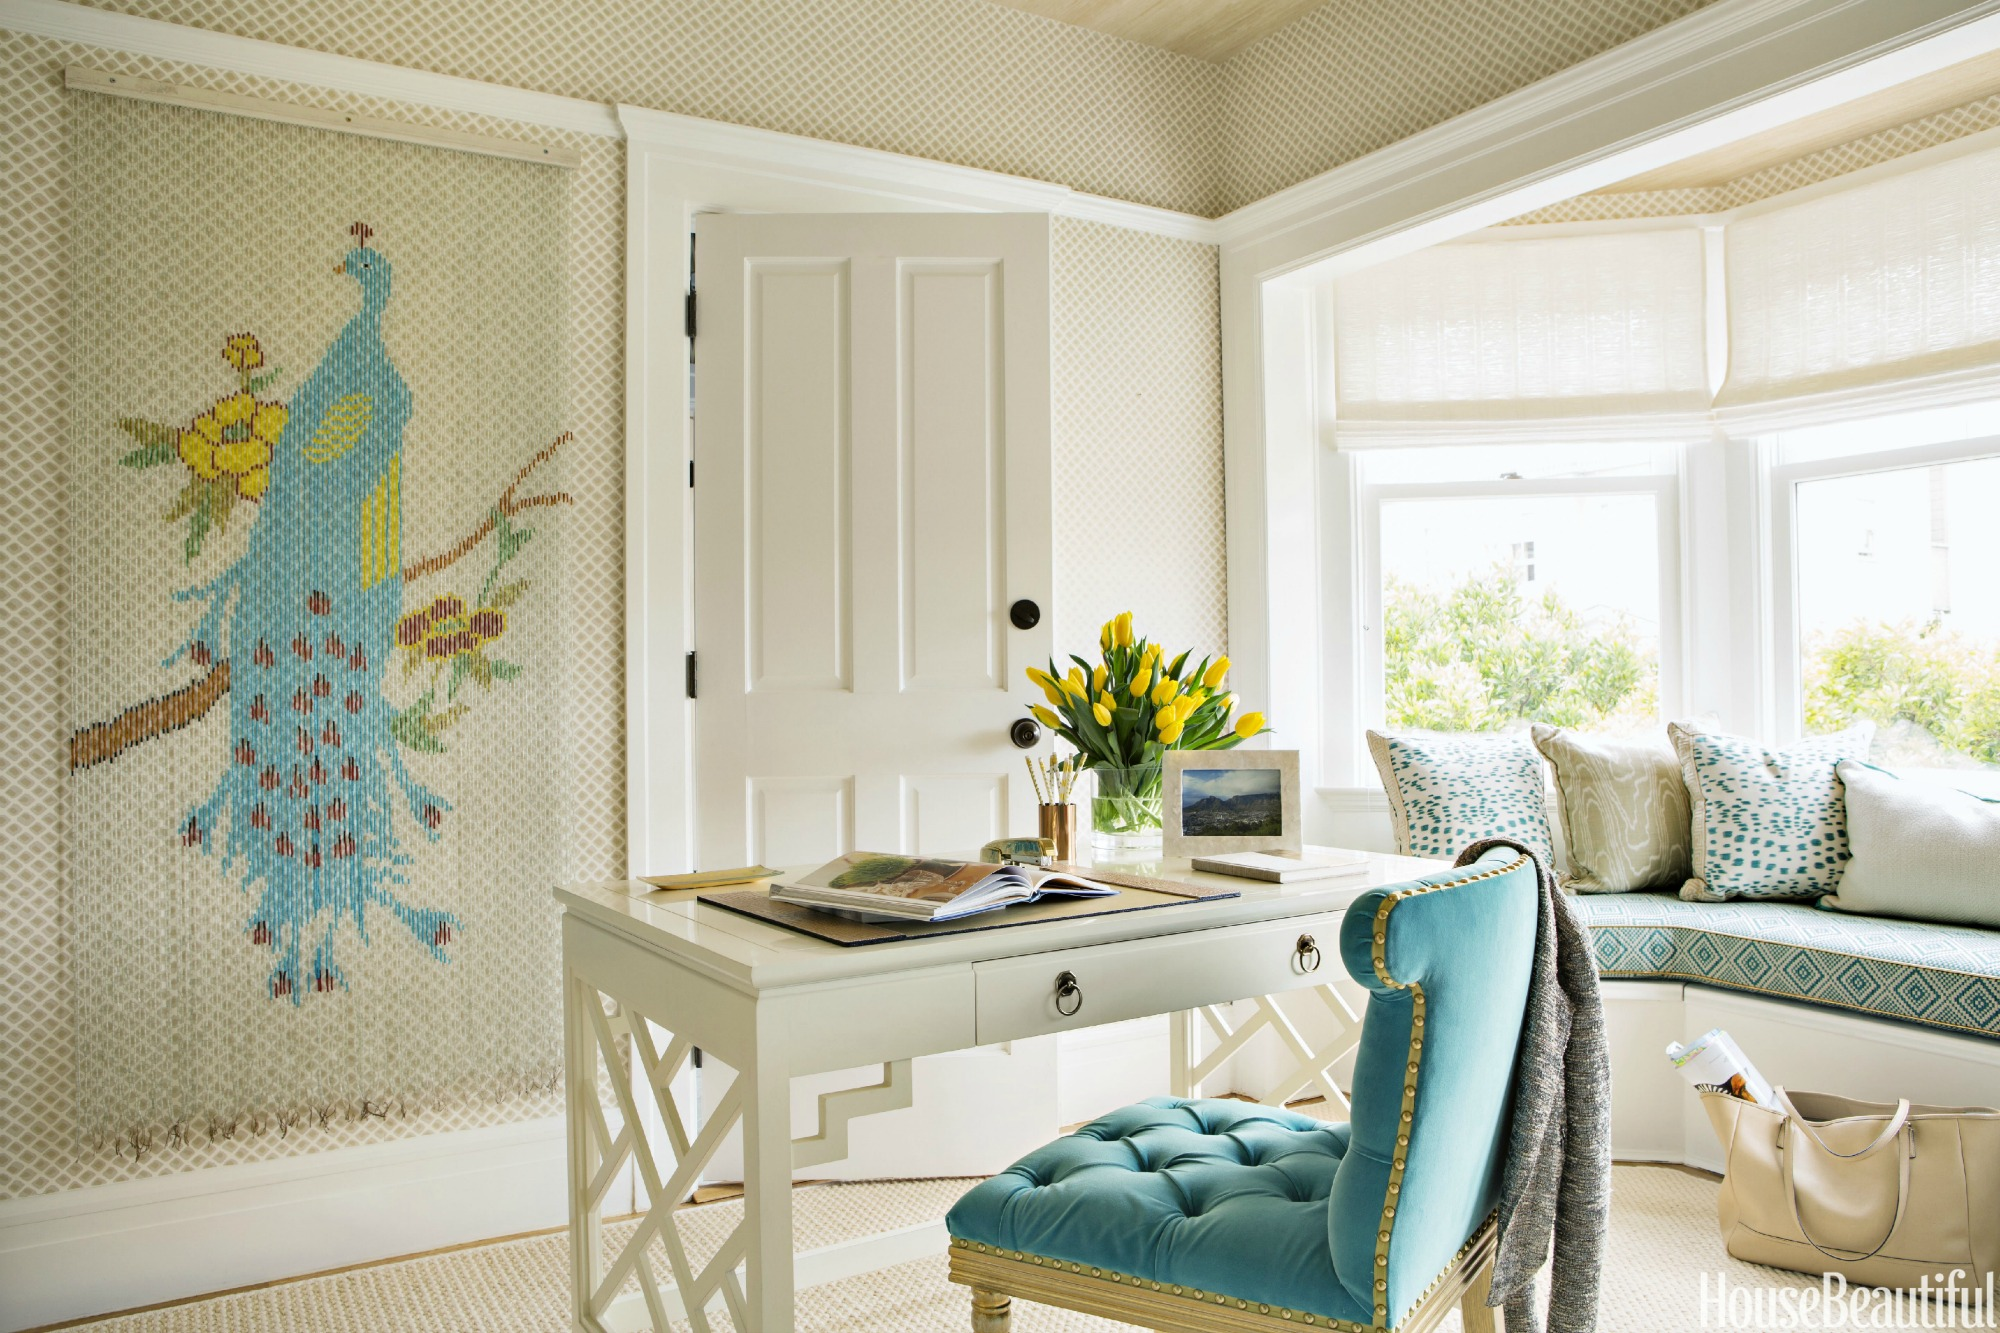 innovative home office decorating ideas | 60+ Best Home Office Decorating Ideas - Design Photos of ...